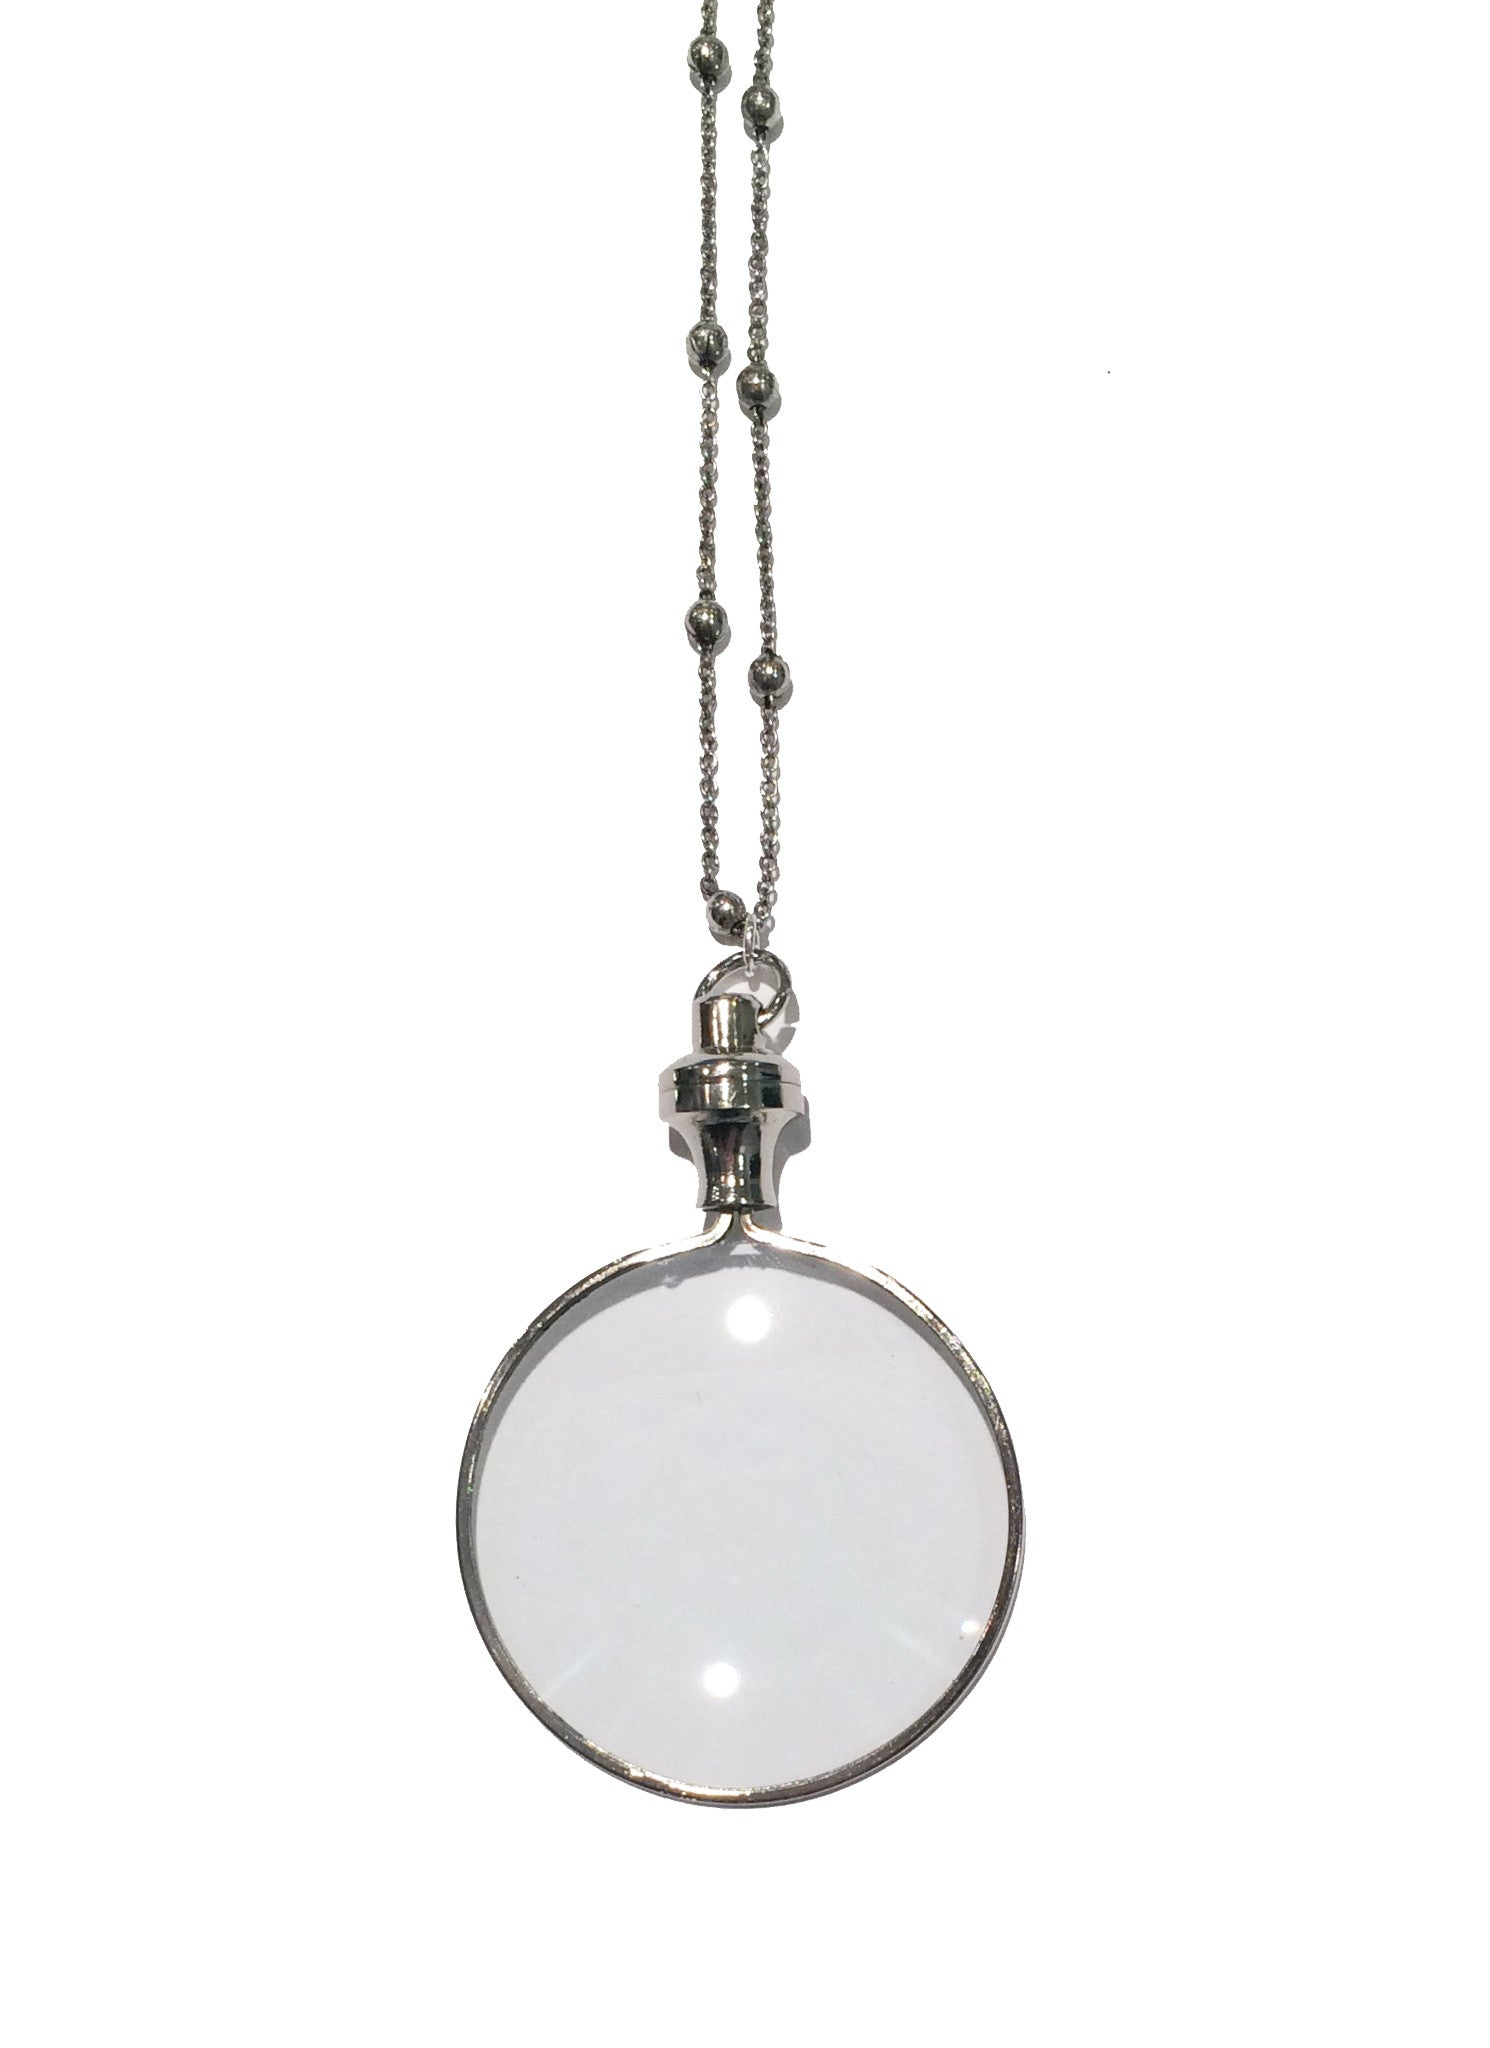 Silver Magnifying Glass Necklace